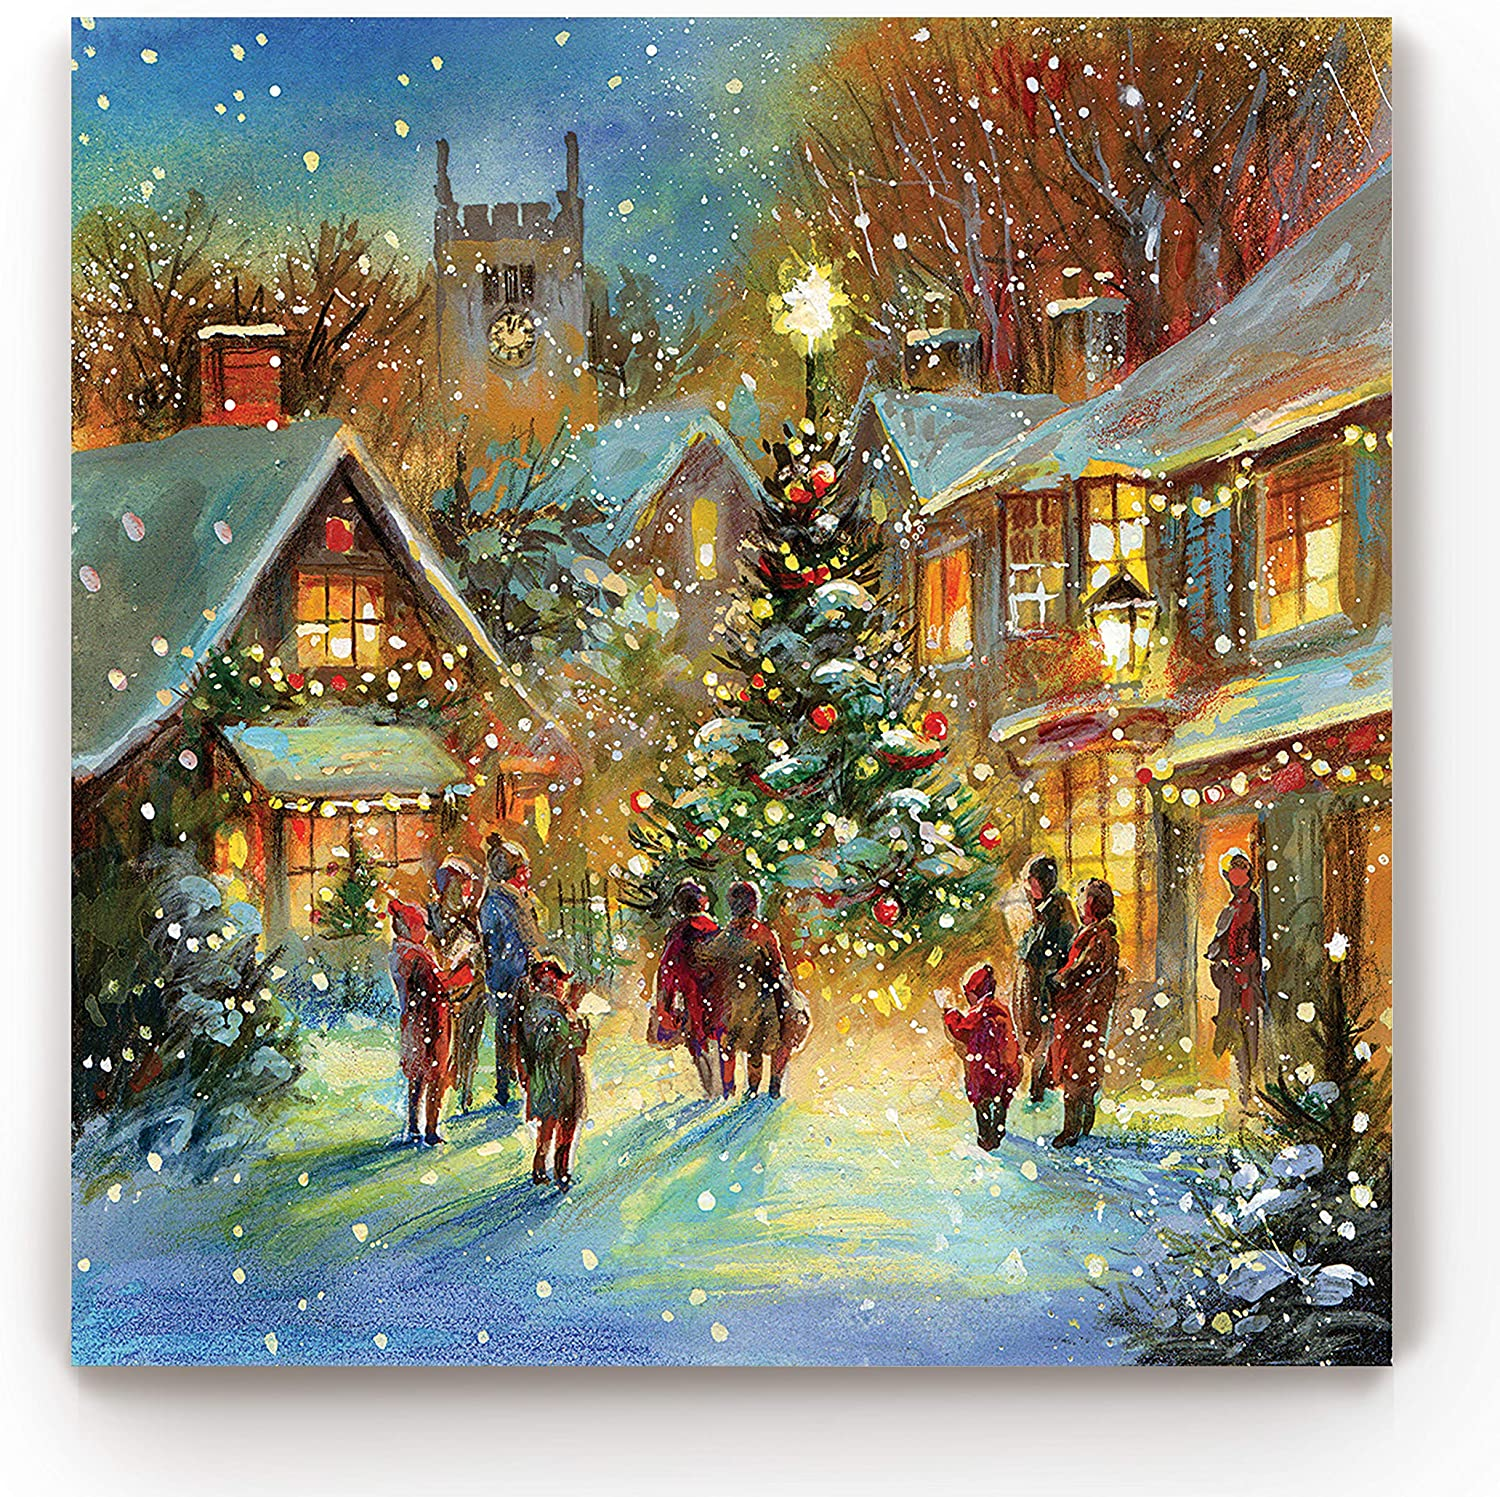 Renditions Gallery Evening Carol by Jim Mitchell Wall Art, Christmas Decor, Idyllic Winter Town, Vibrant Colors, Premium Gallery Wrapped Canvas, Ready to Hang, 40 in H x 40 in W, Made in America